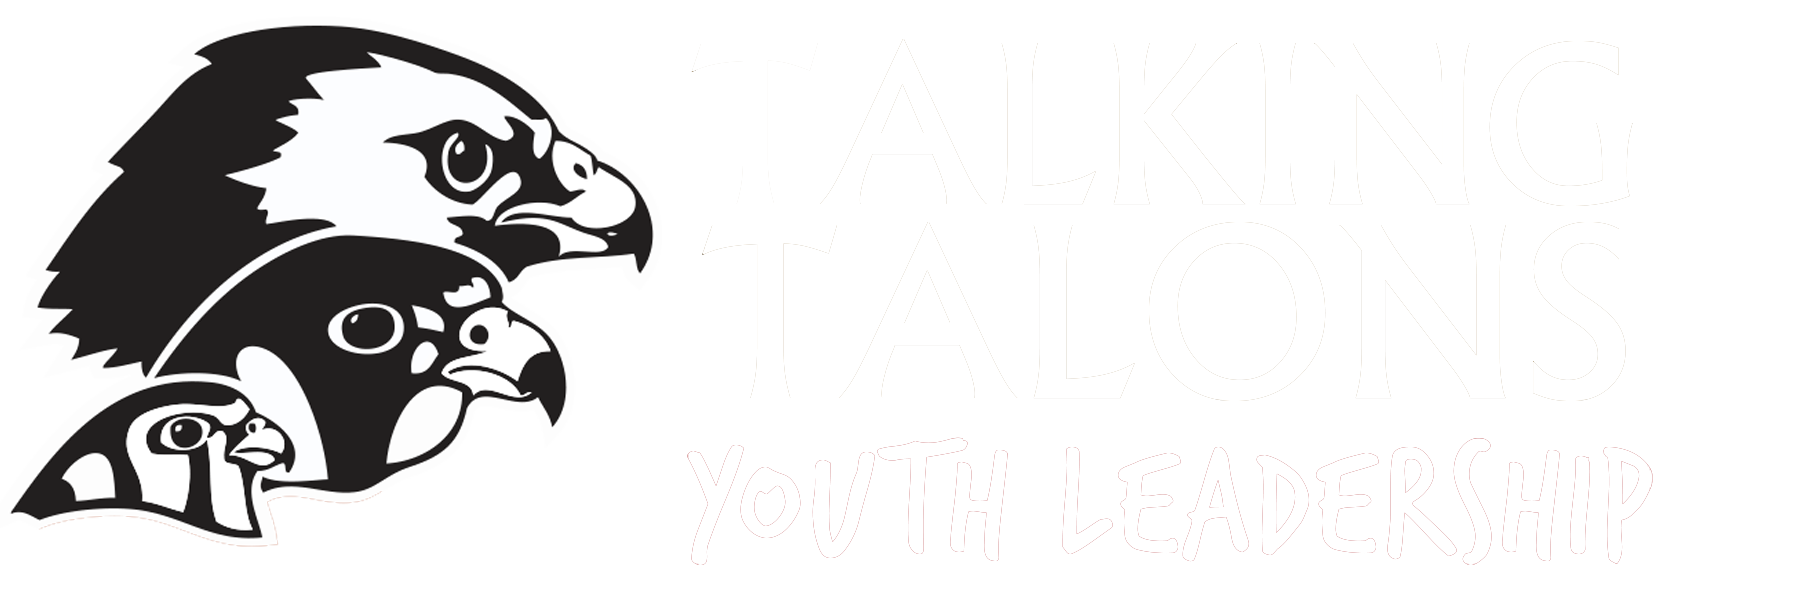 TALKING TALONS YOUTH LEADERSHIP